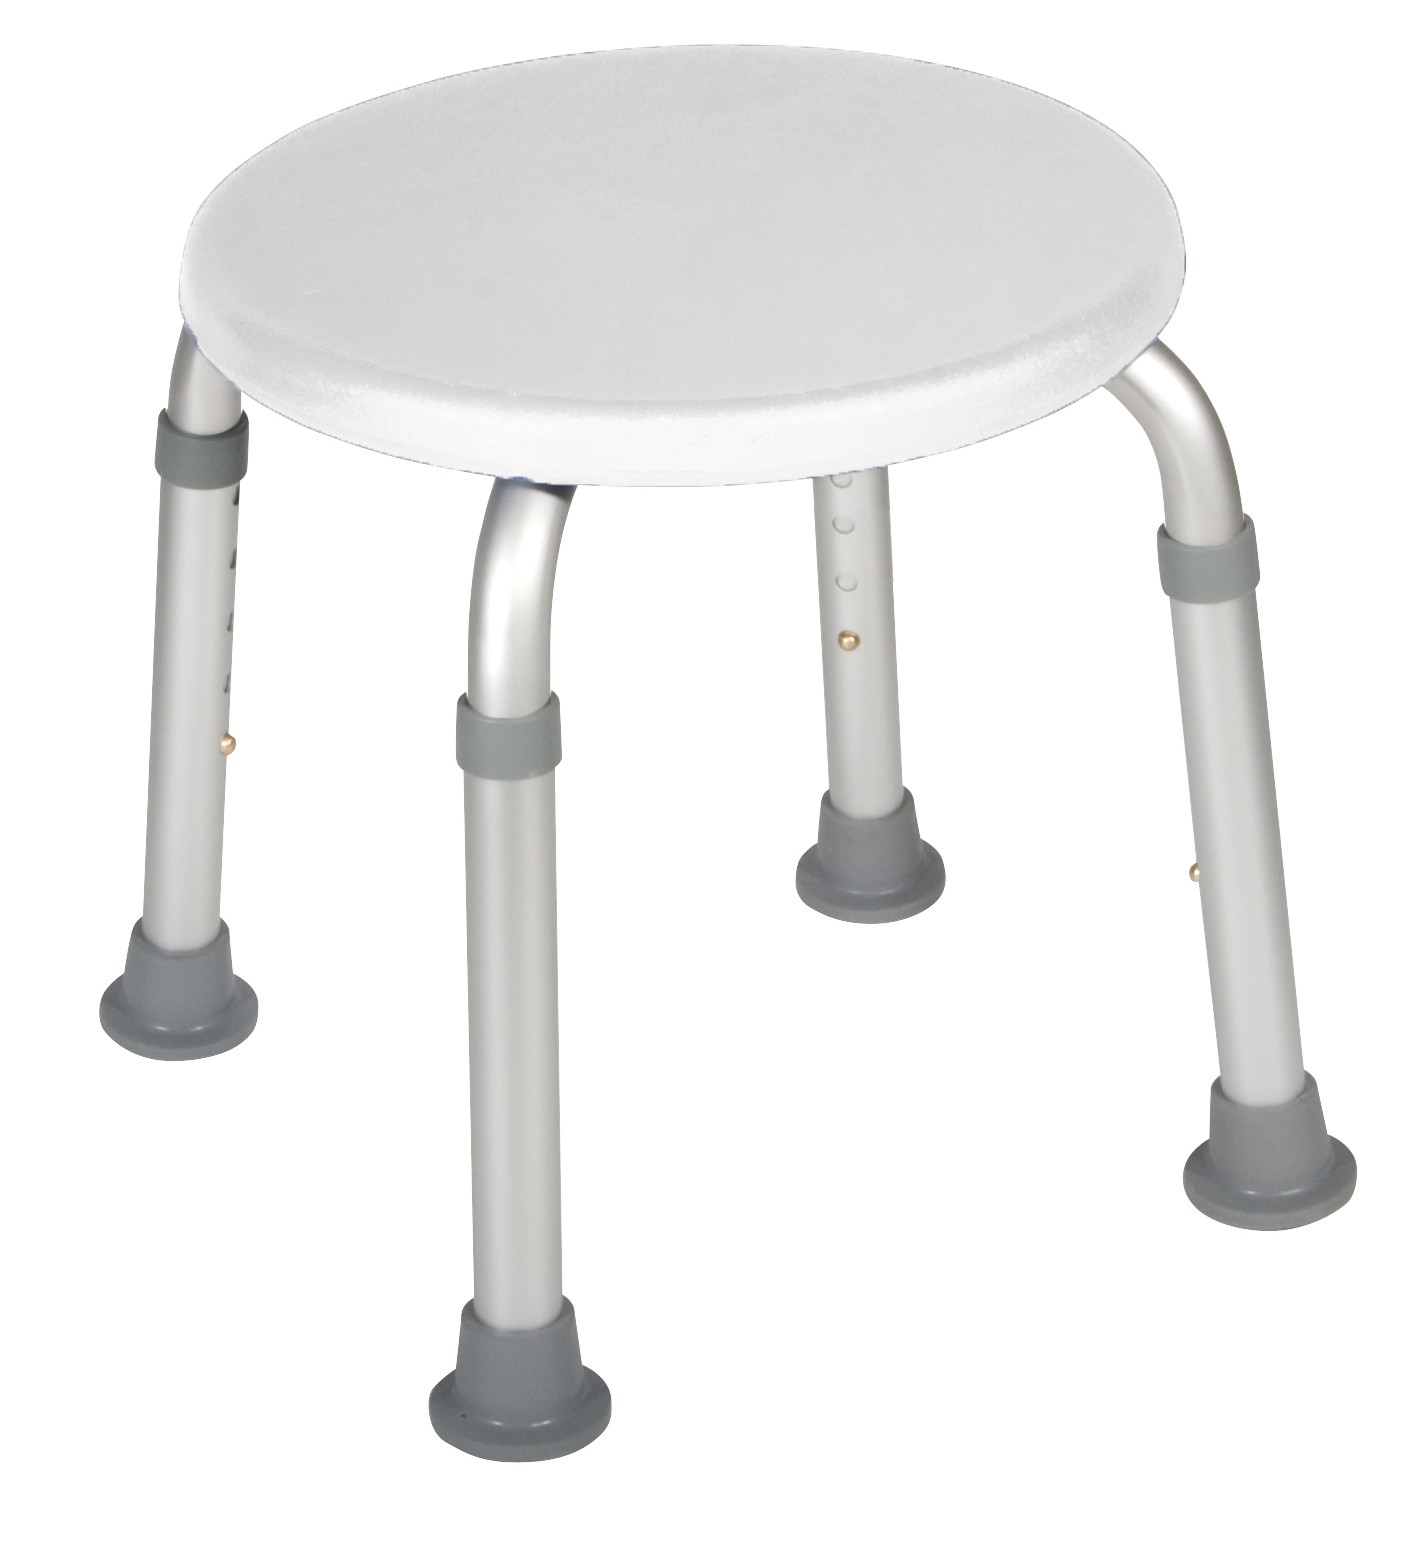 commode plastic shower backrest lovely beautiful amazon knowee wheels with chair adjustable bench of tub transfer